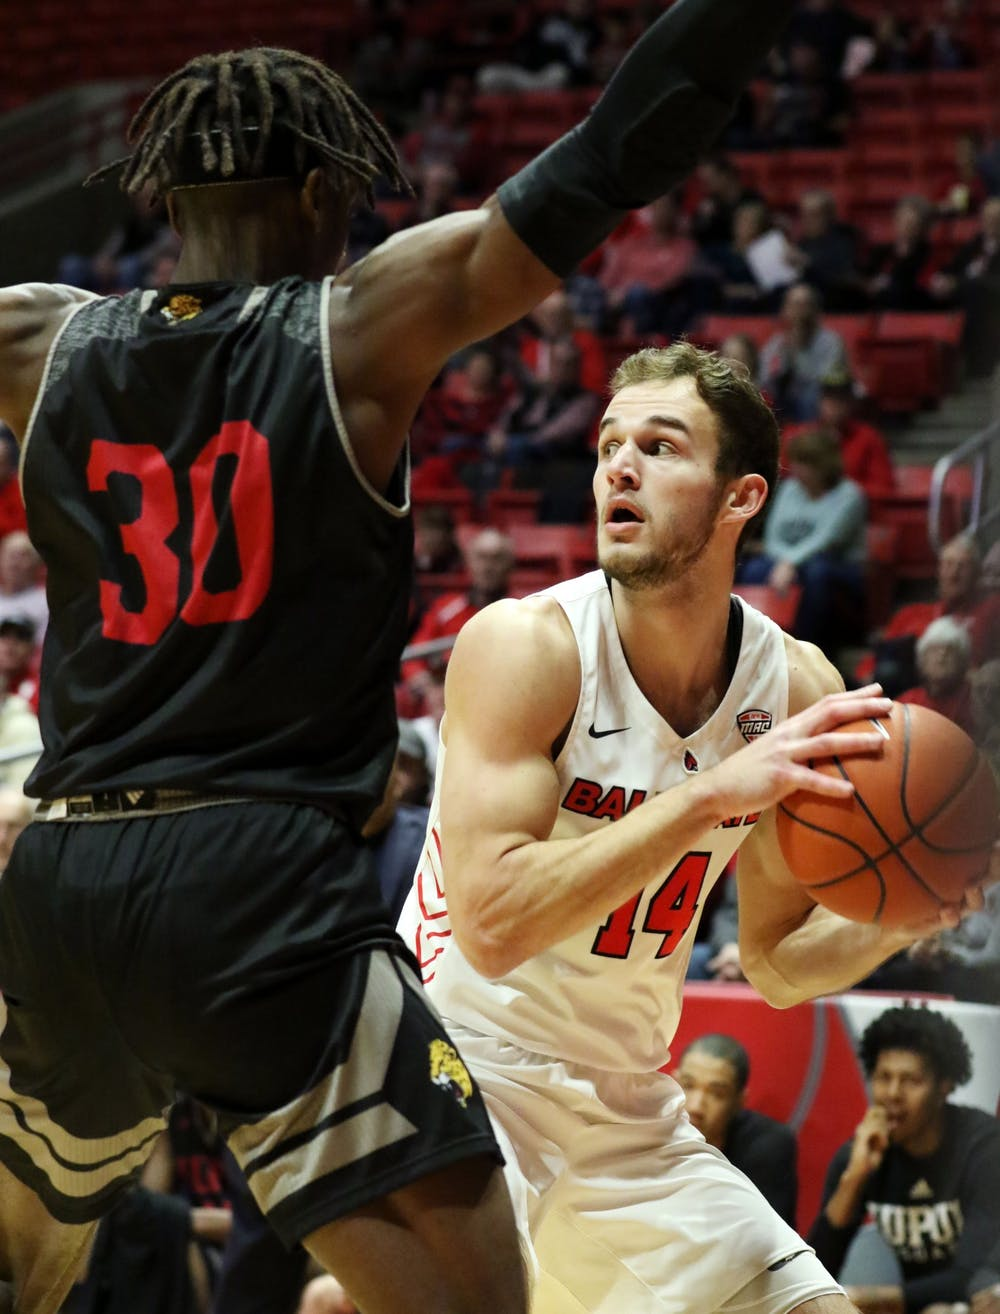 <p>Ball State senior forward Kyle Mallers looks for an opening while being guarded by IUPUI graduate forward Zo Tyson during the Cardinals' game against the Jaguars Dec. 7, 2019, at John E. Worthen Arena. Mallers scored 11 points. <strong>Paige Grider, DN</strong></p>